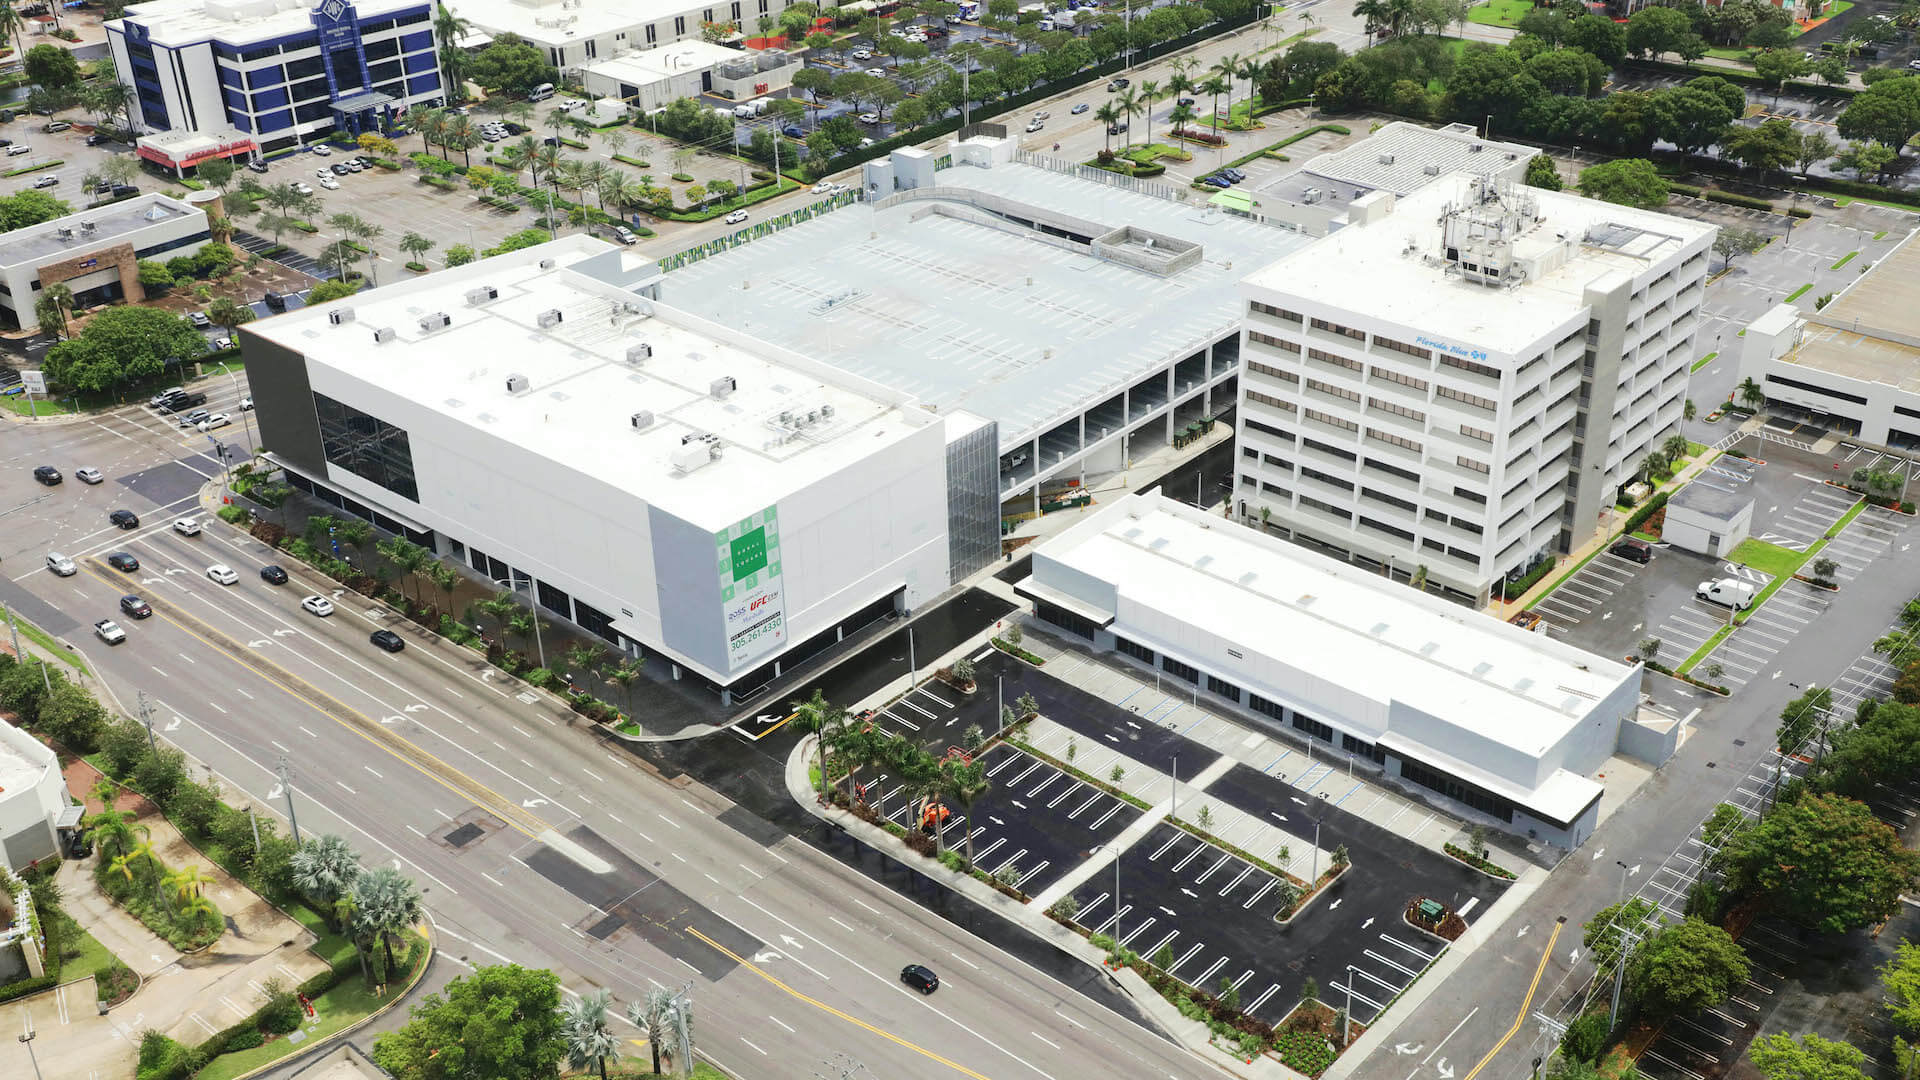 doral square - right angle perspective aerial view with parking lot